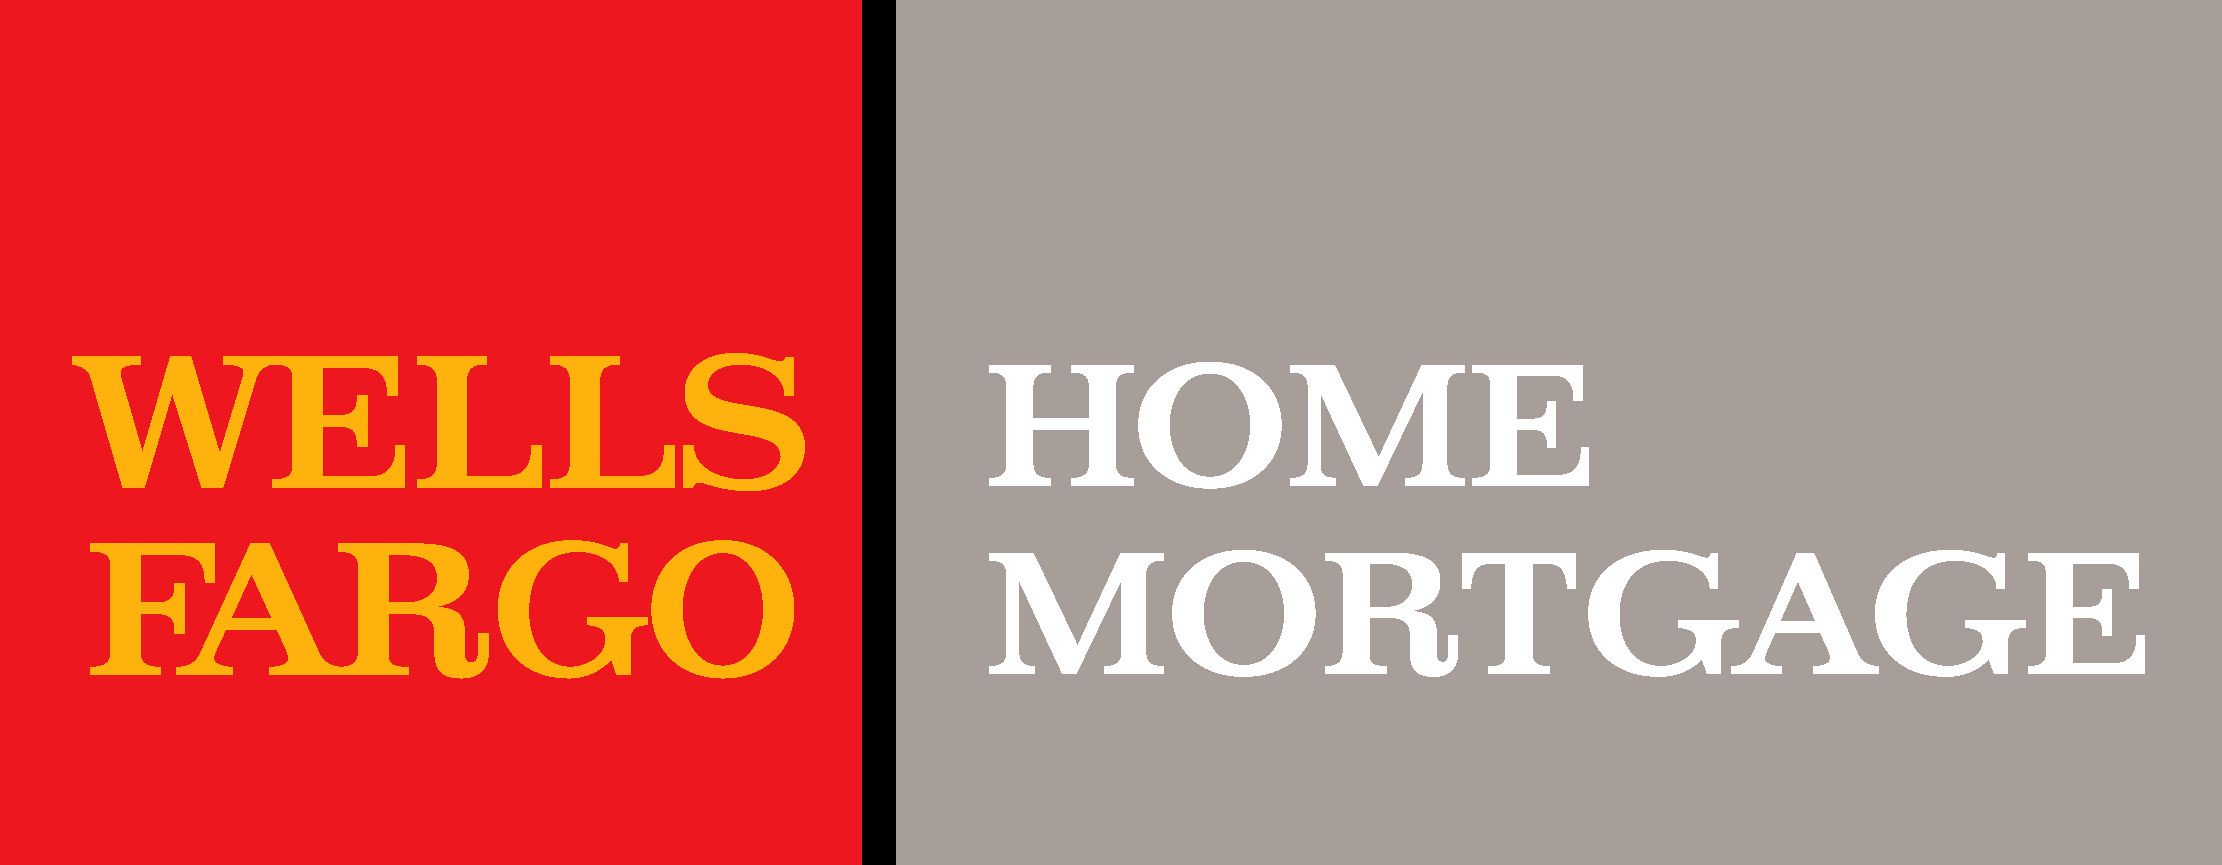 best ideas about wells fargo home mortgage wells 17 best ideas about wells fargo home mortgage wells fargo mortgage passion poems and wells fargo finance